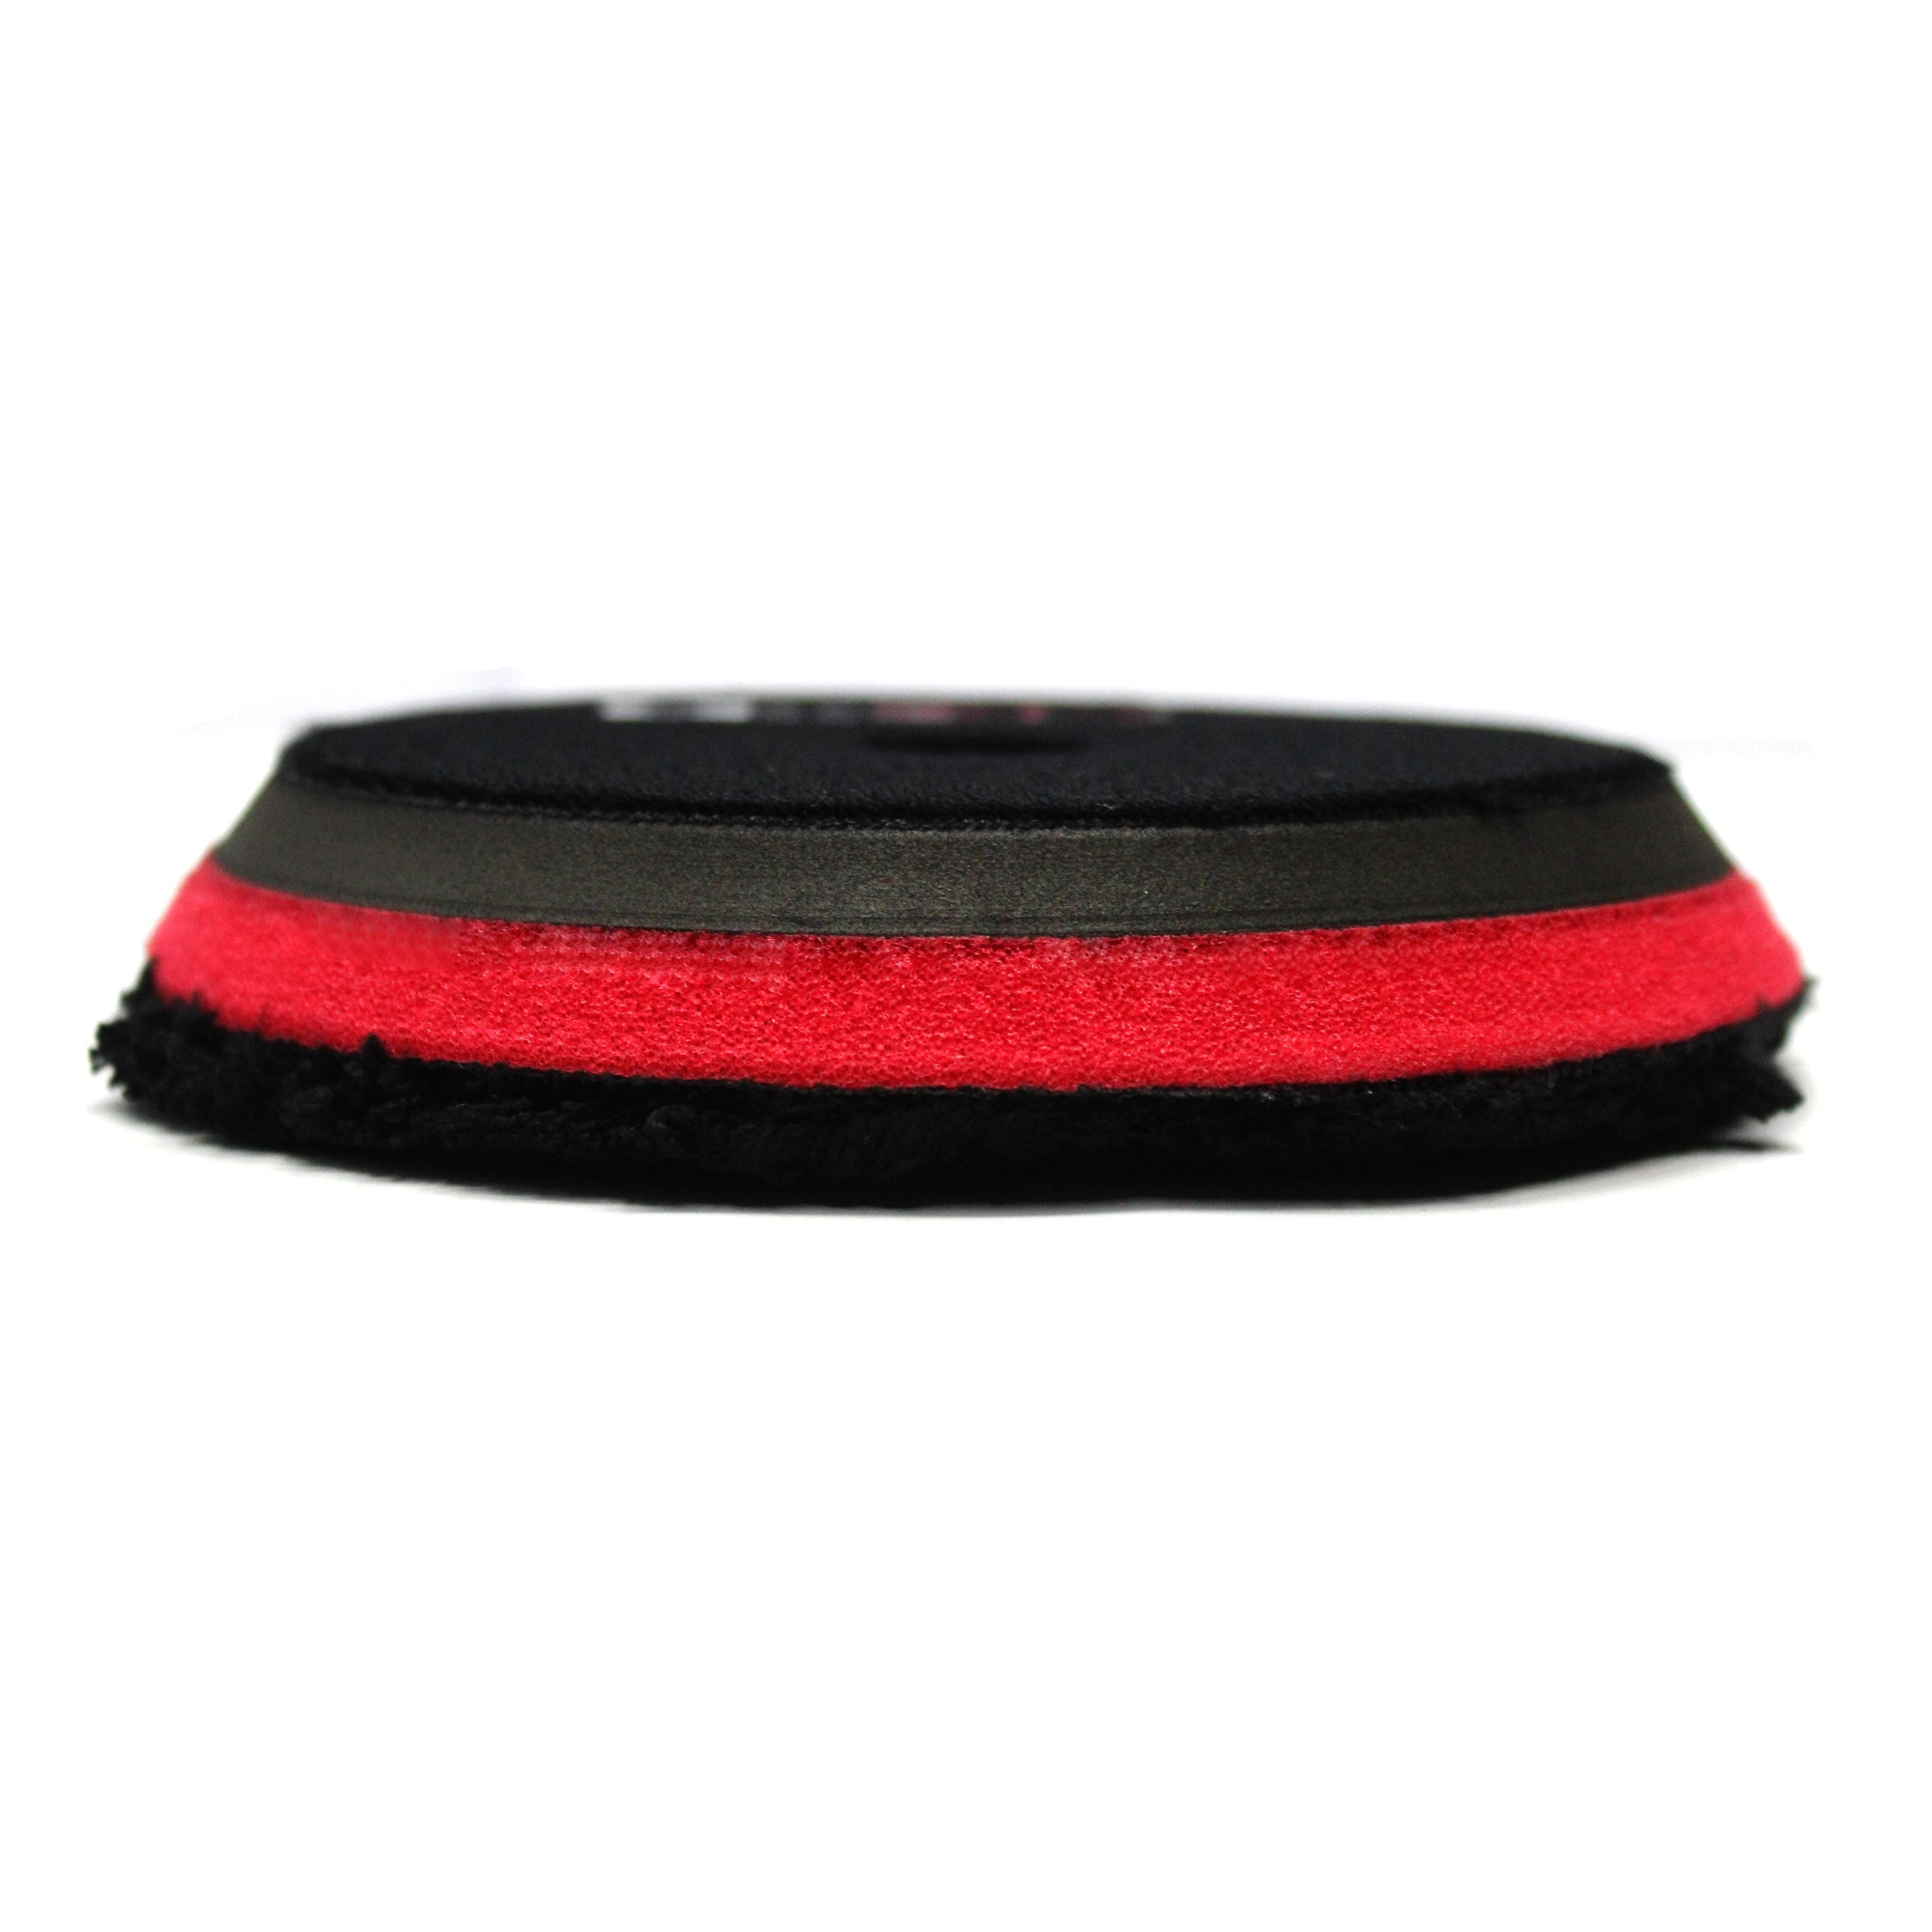 Microfiber One Step Polishing Pad - Black Edition - D-Tail Lab